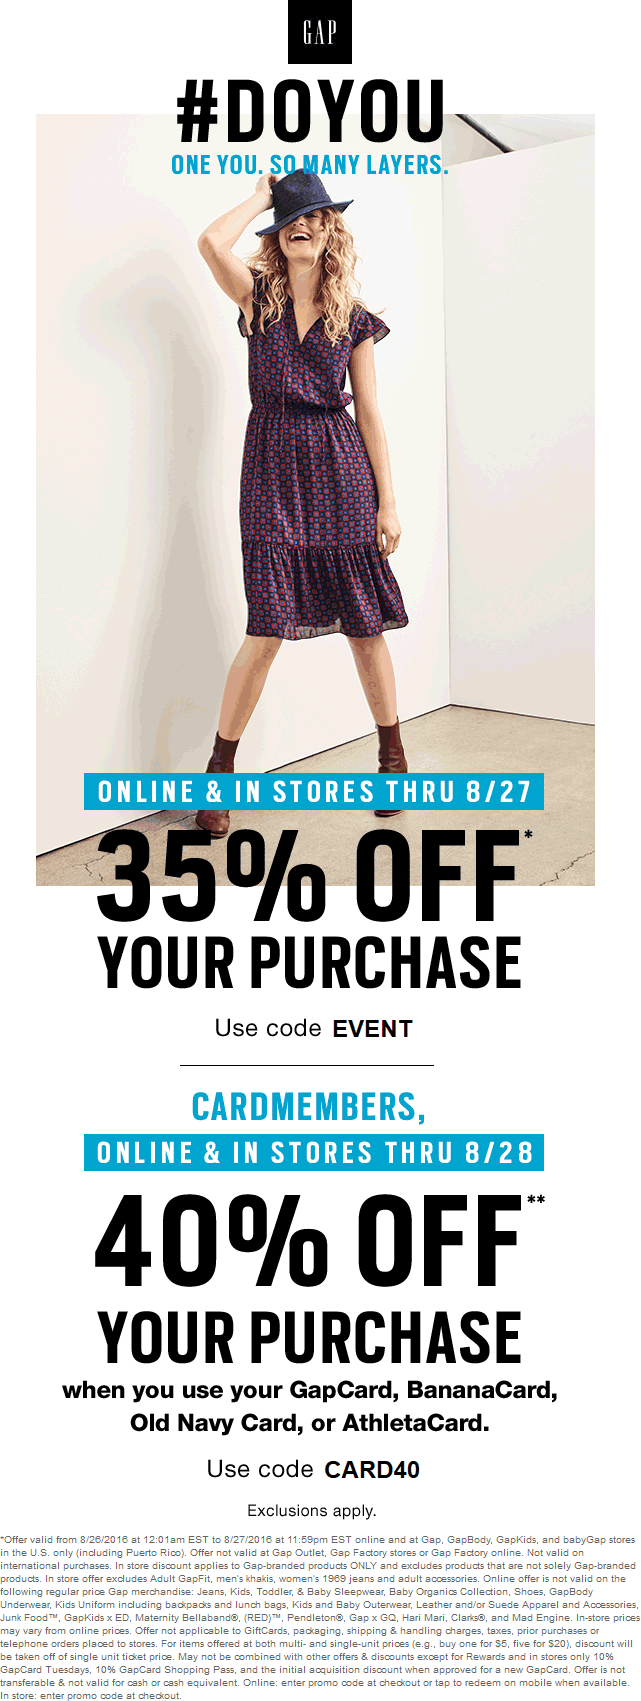 Gap Coupon February 2018 35% off today at Gap, or online via promo code EVENT